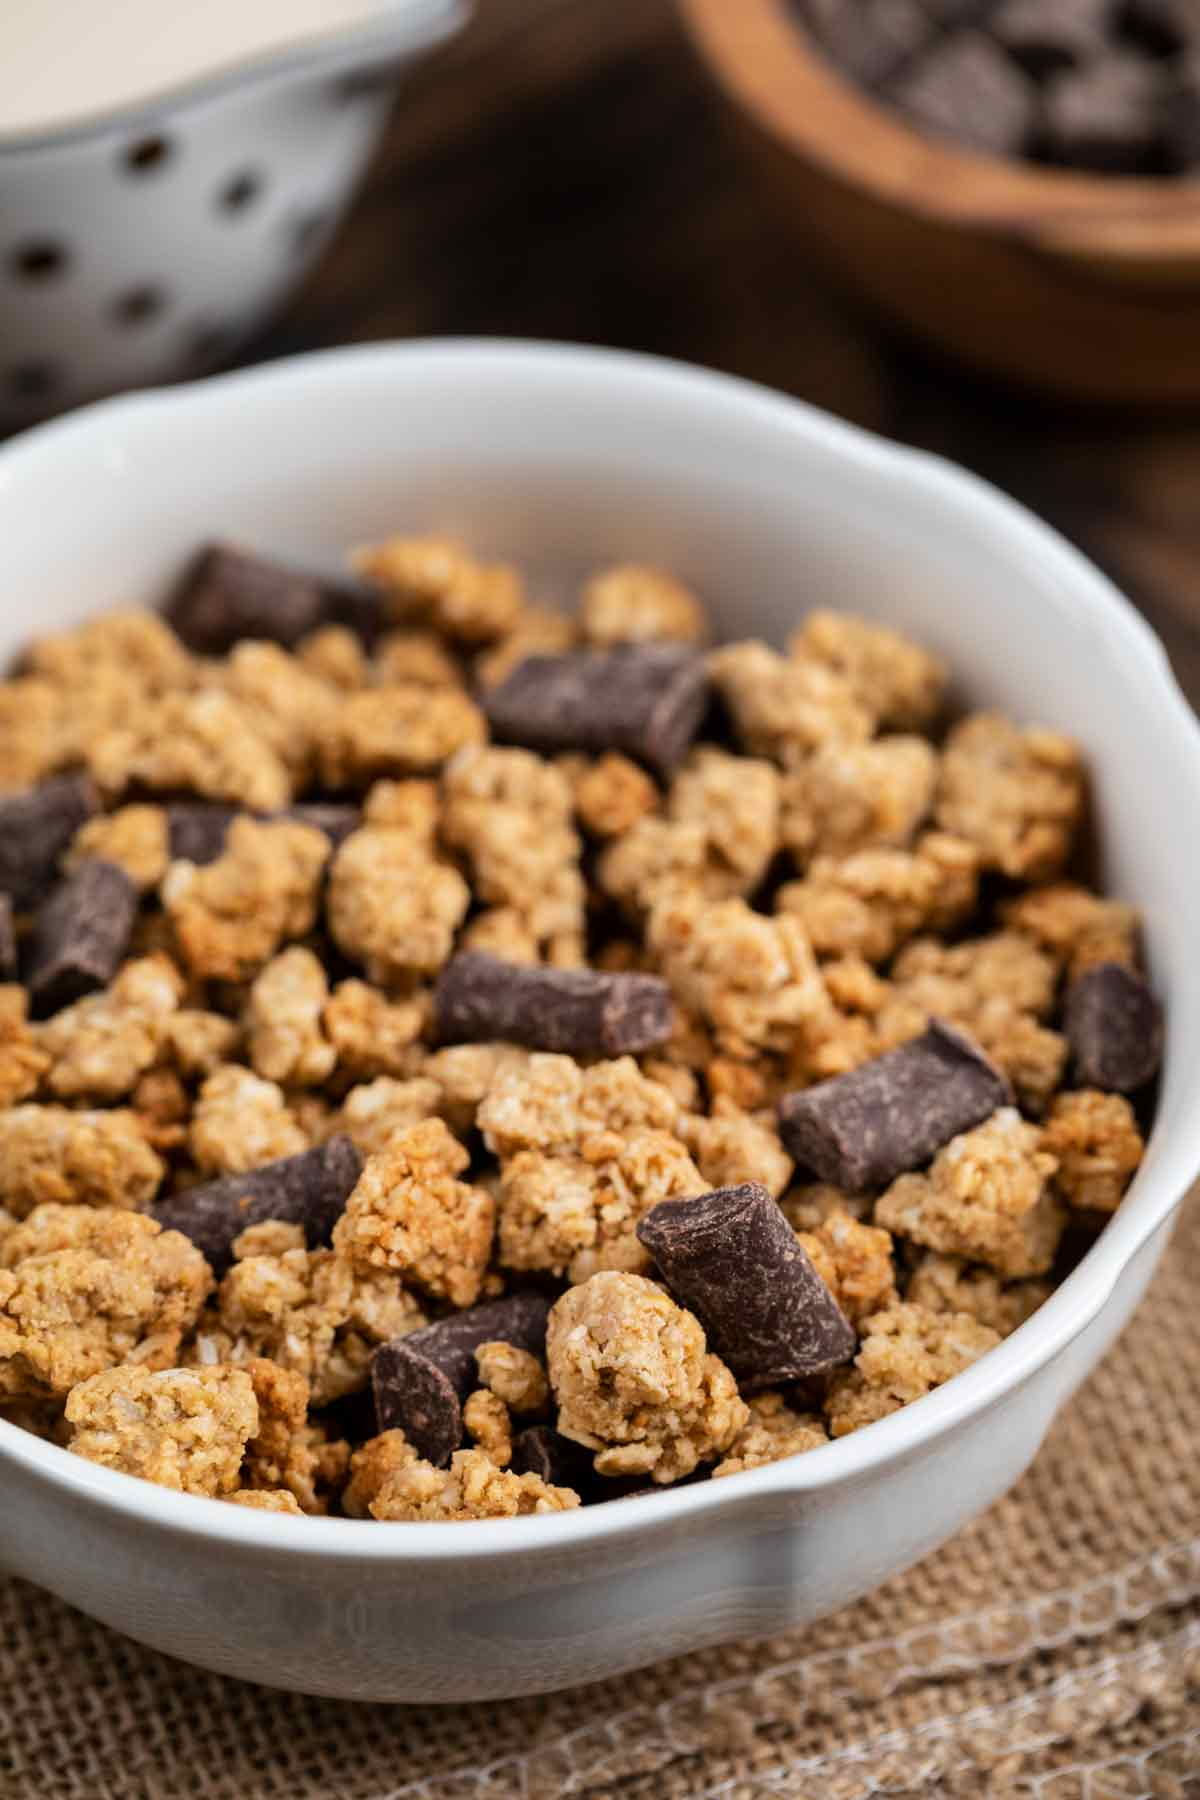 A bowl of baked granola with chocolate chunks.